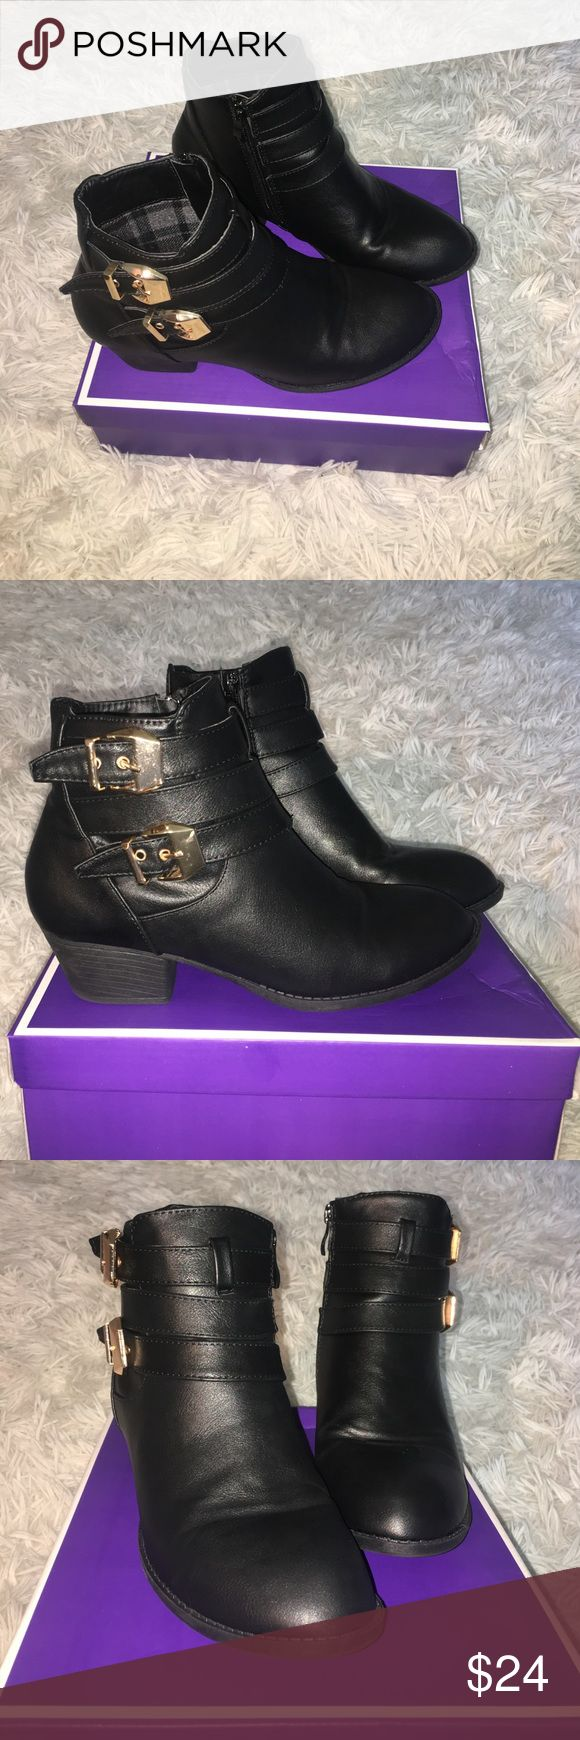 Black boots with gold buckle still new These leather booties have a 1.5 inch heel with two gold buckles on the outside and zip up on the inside. Just bought these a little over a week ago and they've only been worn a couple of times! (Shoes are not from Zara) Zara Shoes Ankle Boots & Booties